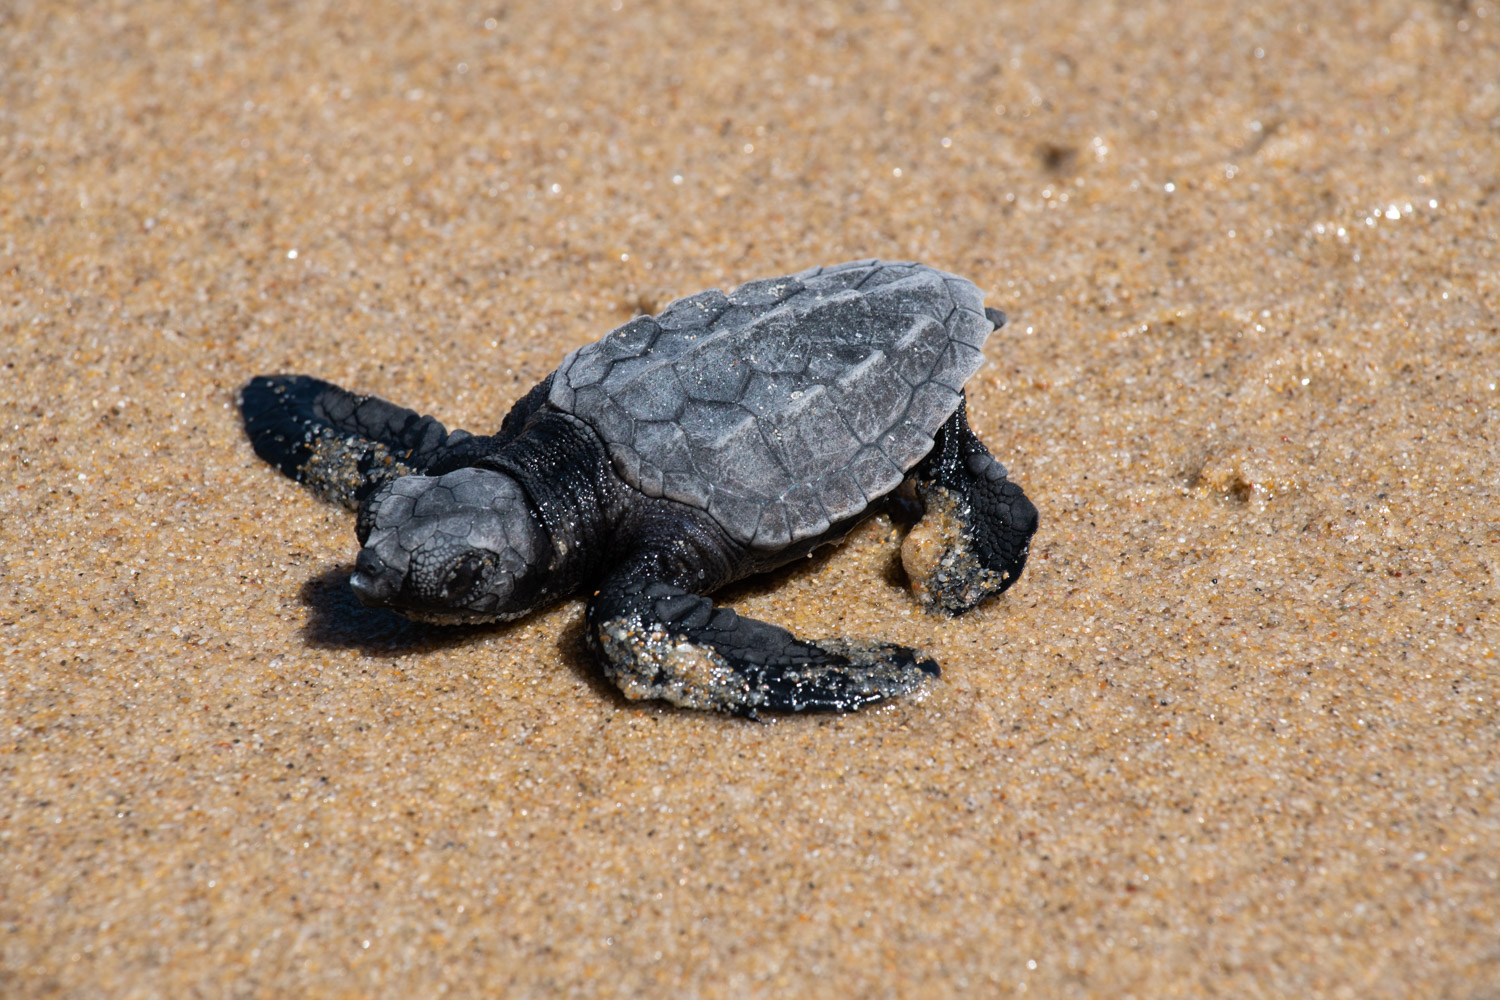 One of the out-of-season turtle hatchlings crossing the sand on Queensland's Sunshine Coast.